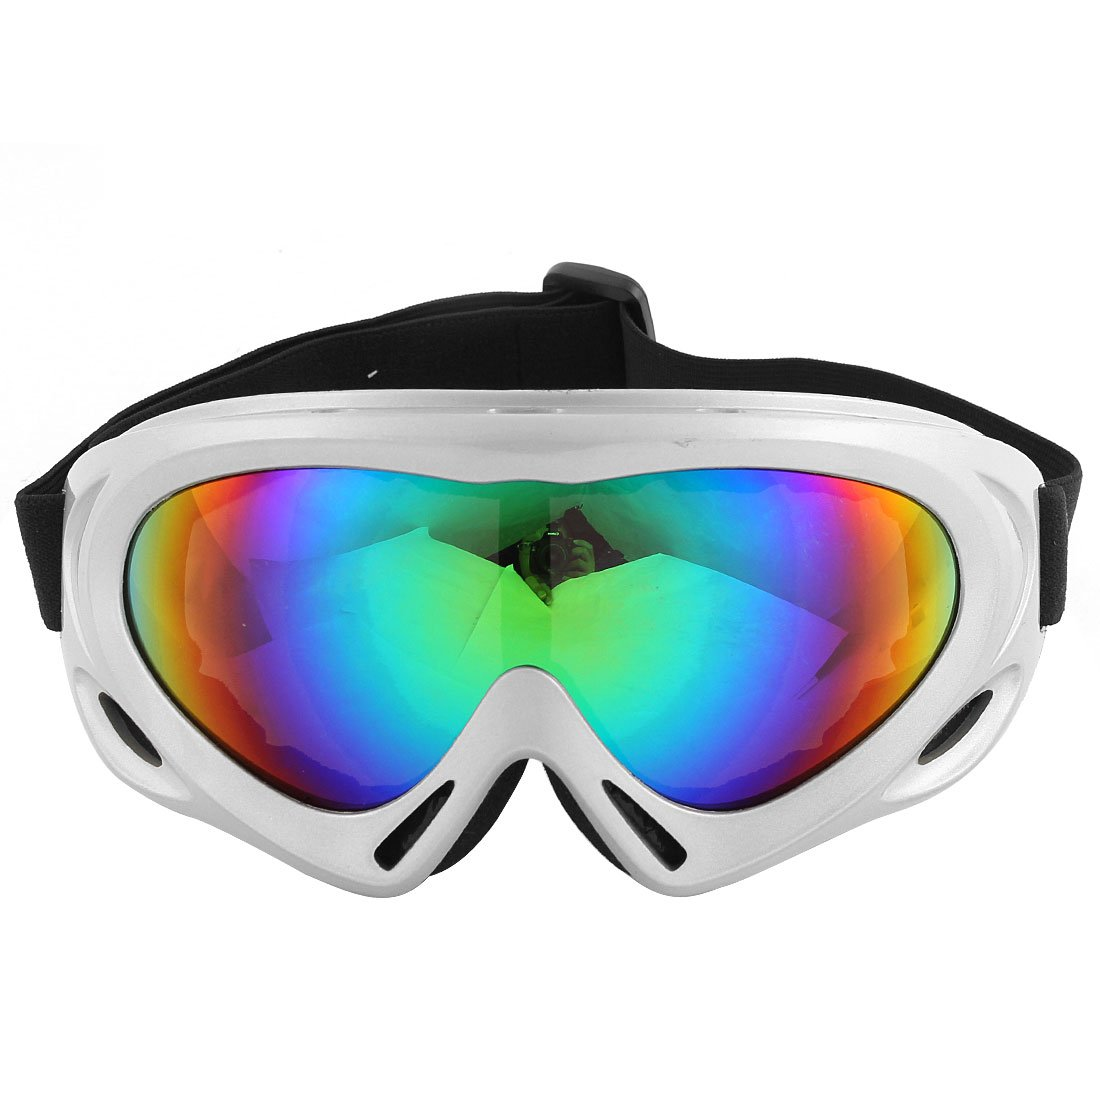 uxcell a15052000ux0196 Motorcycle Goggles